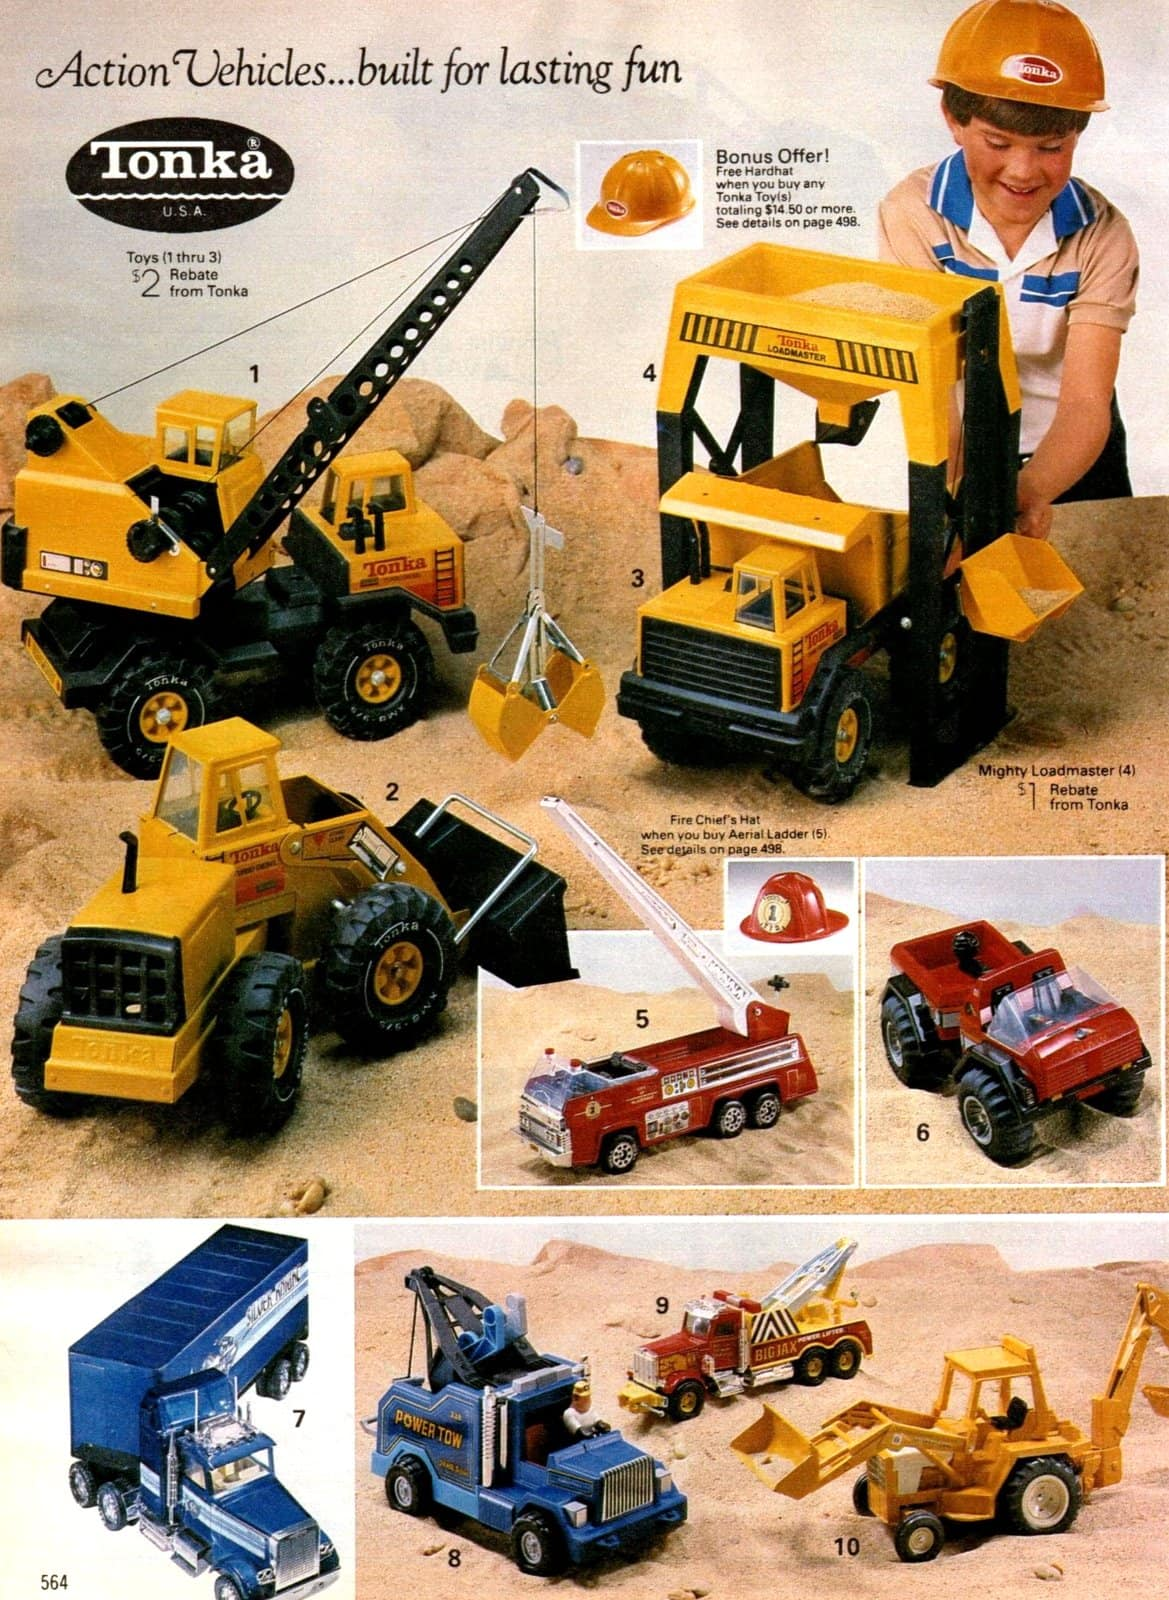 Vintage Tonka truck toys from 1984 (2)